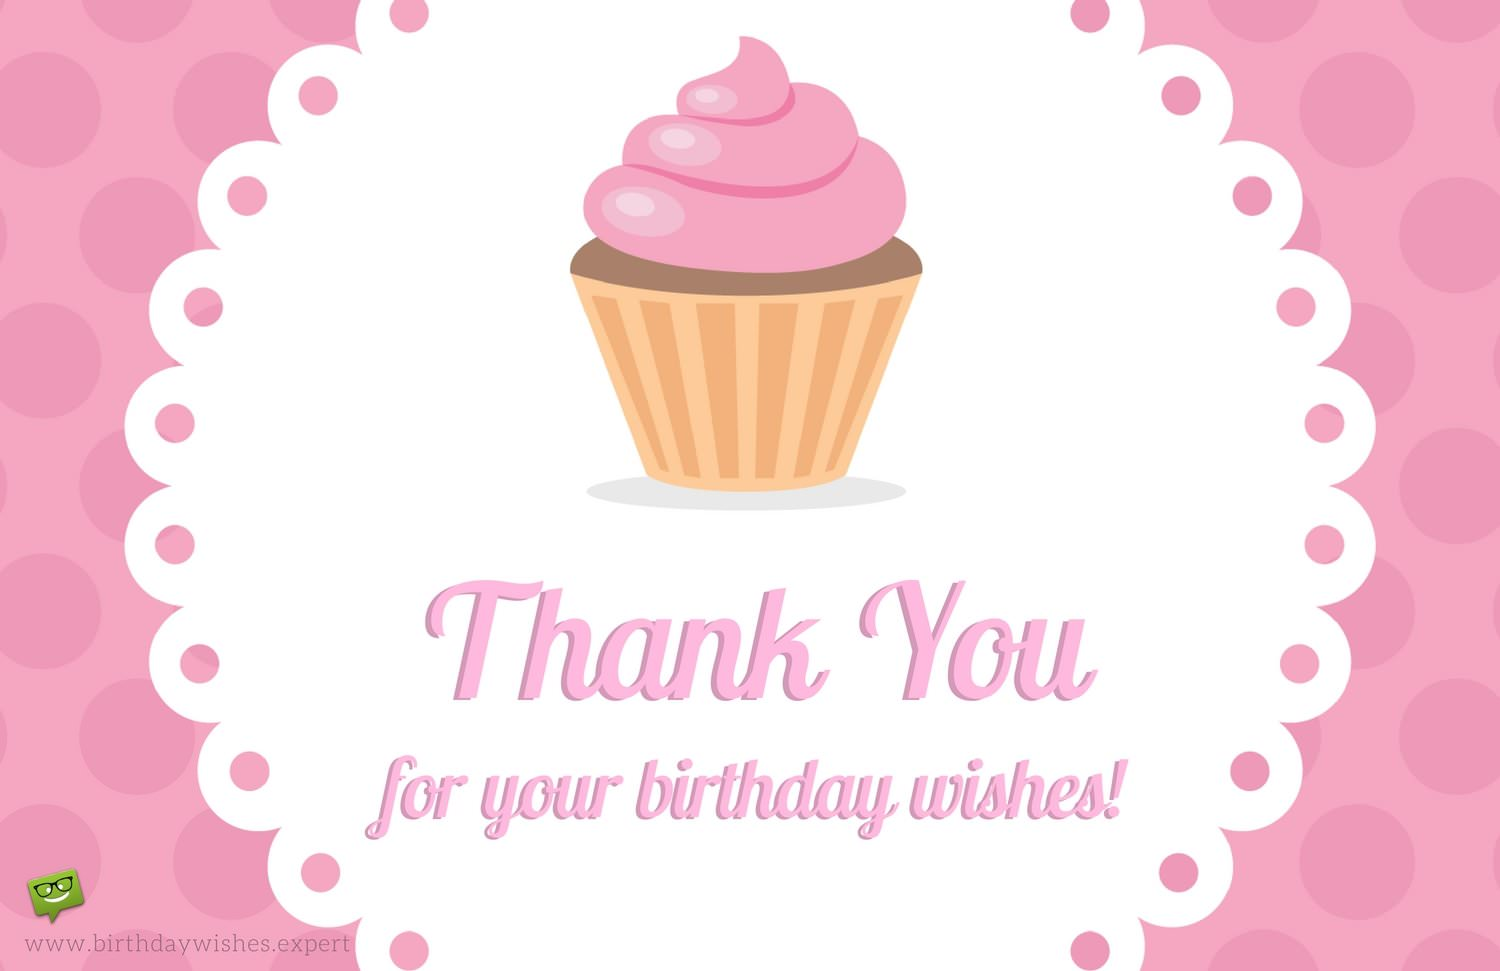 Thank You for the Birthday Wishes!.